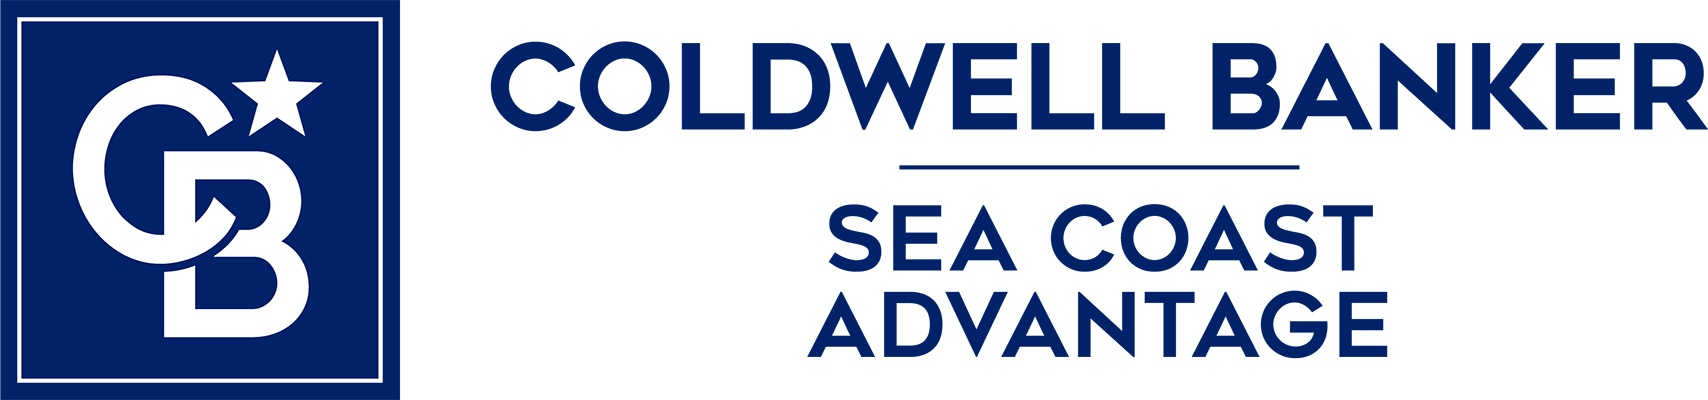 Ashley Dance - Coldwell Banker Sea Coast Advantage Realty Logo